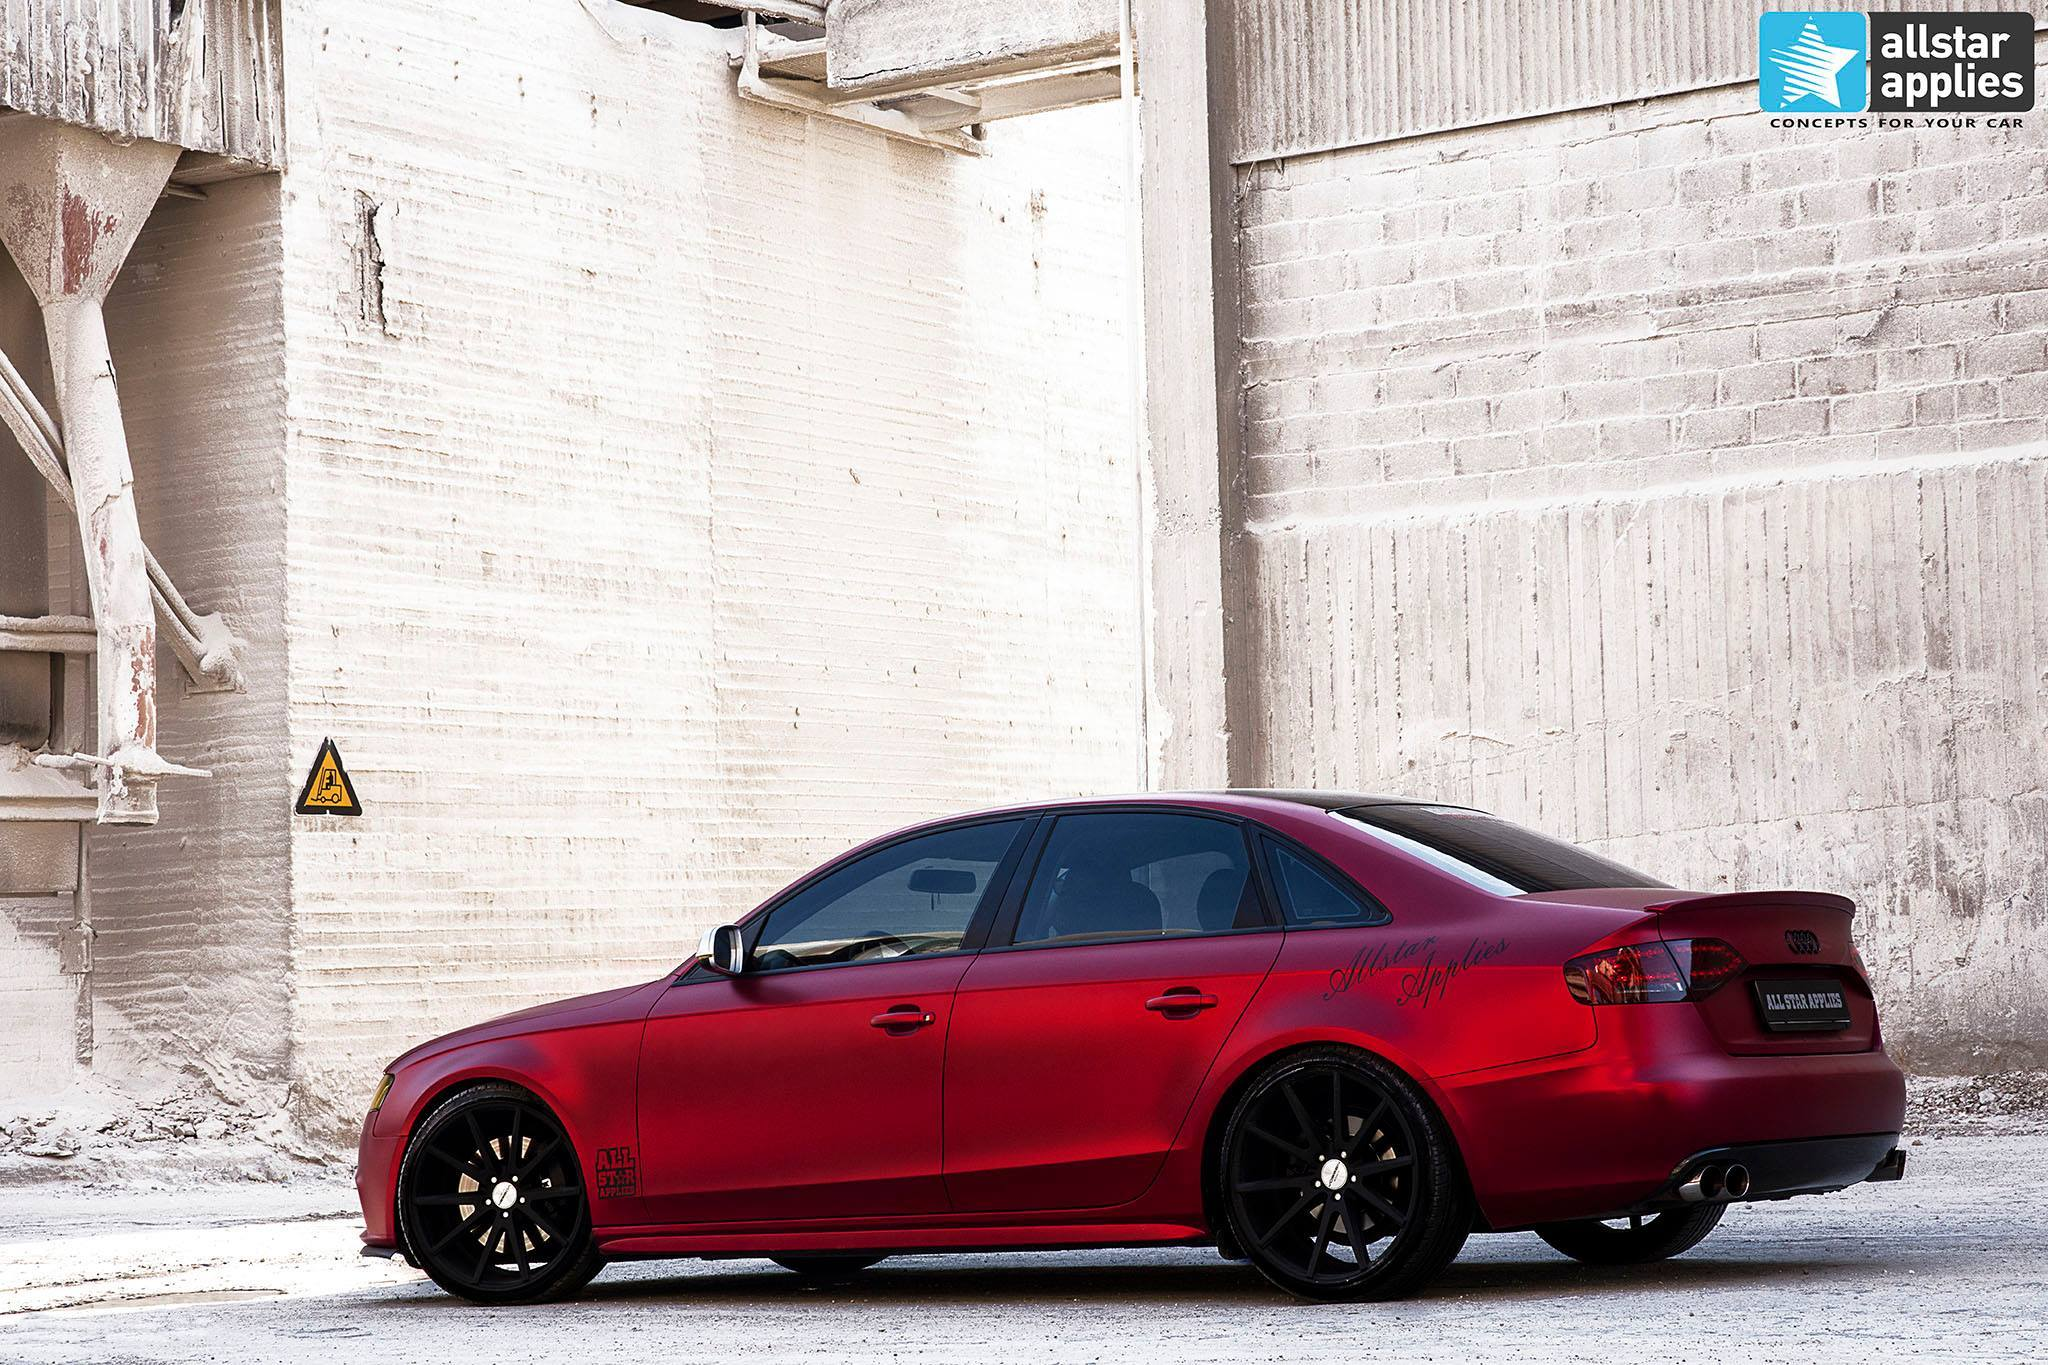 Audi a4 - cherry red chrome 3